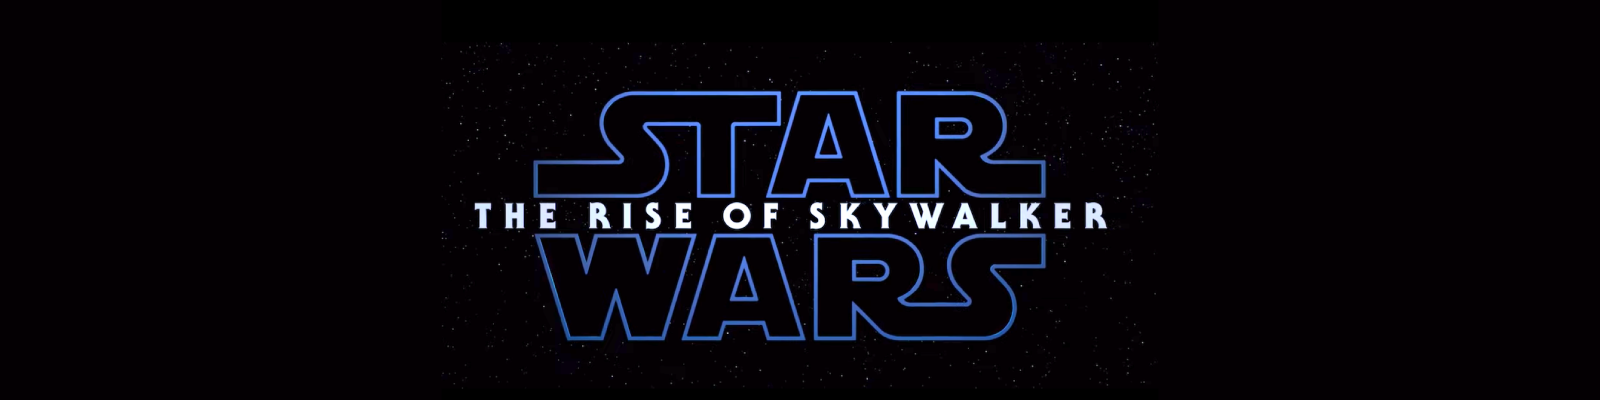 Star Wars - The Rise Of Skywalker Banner